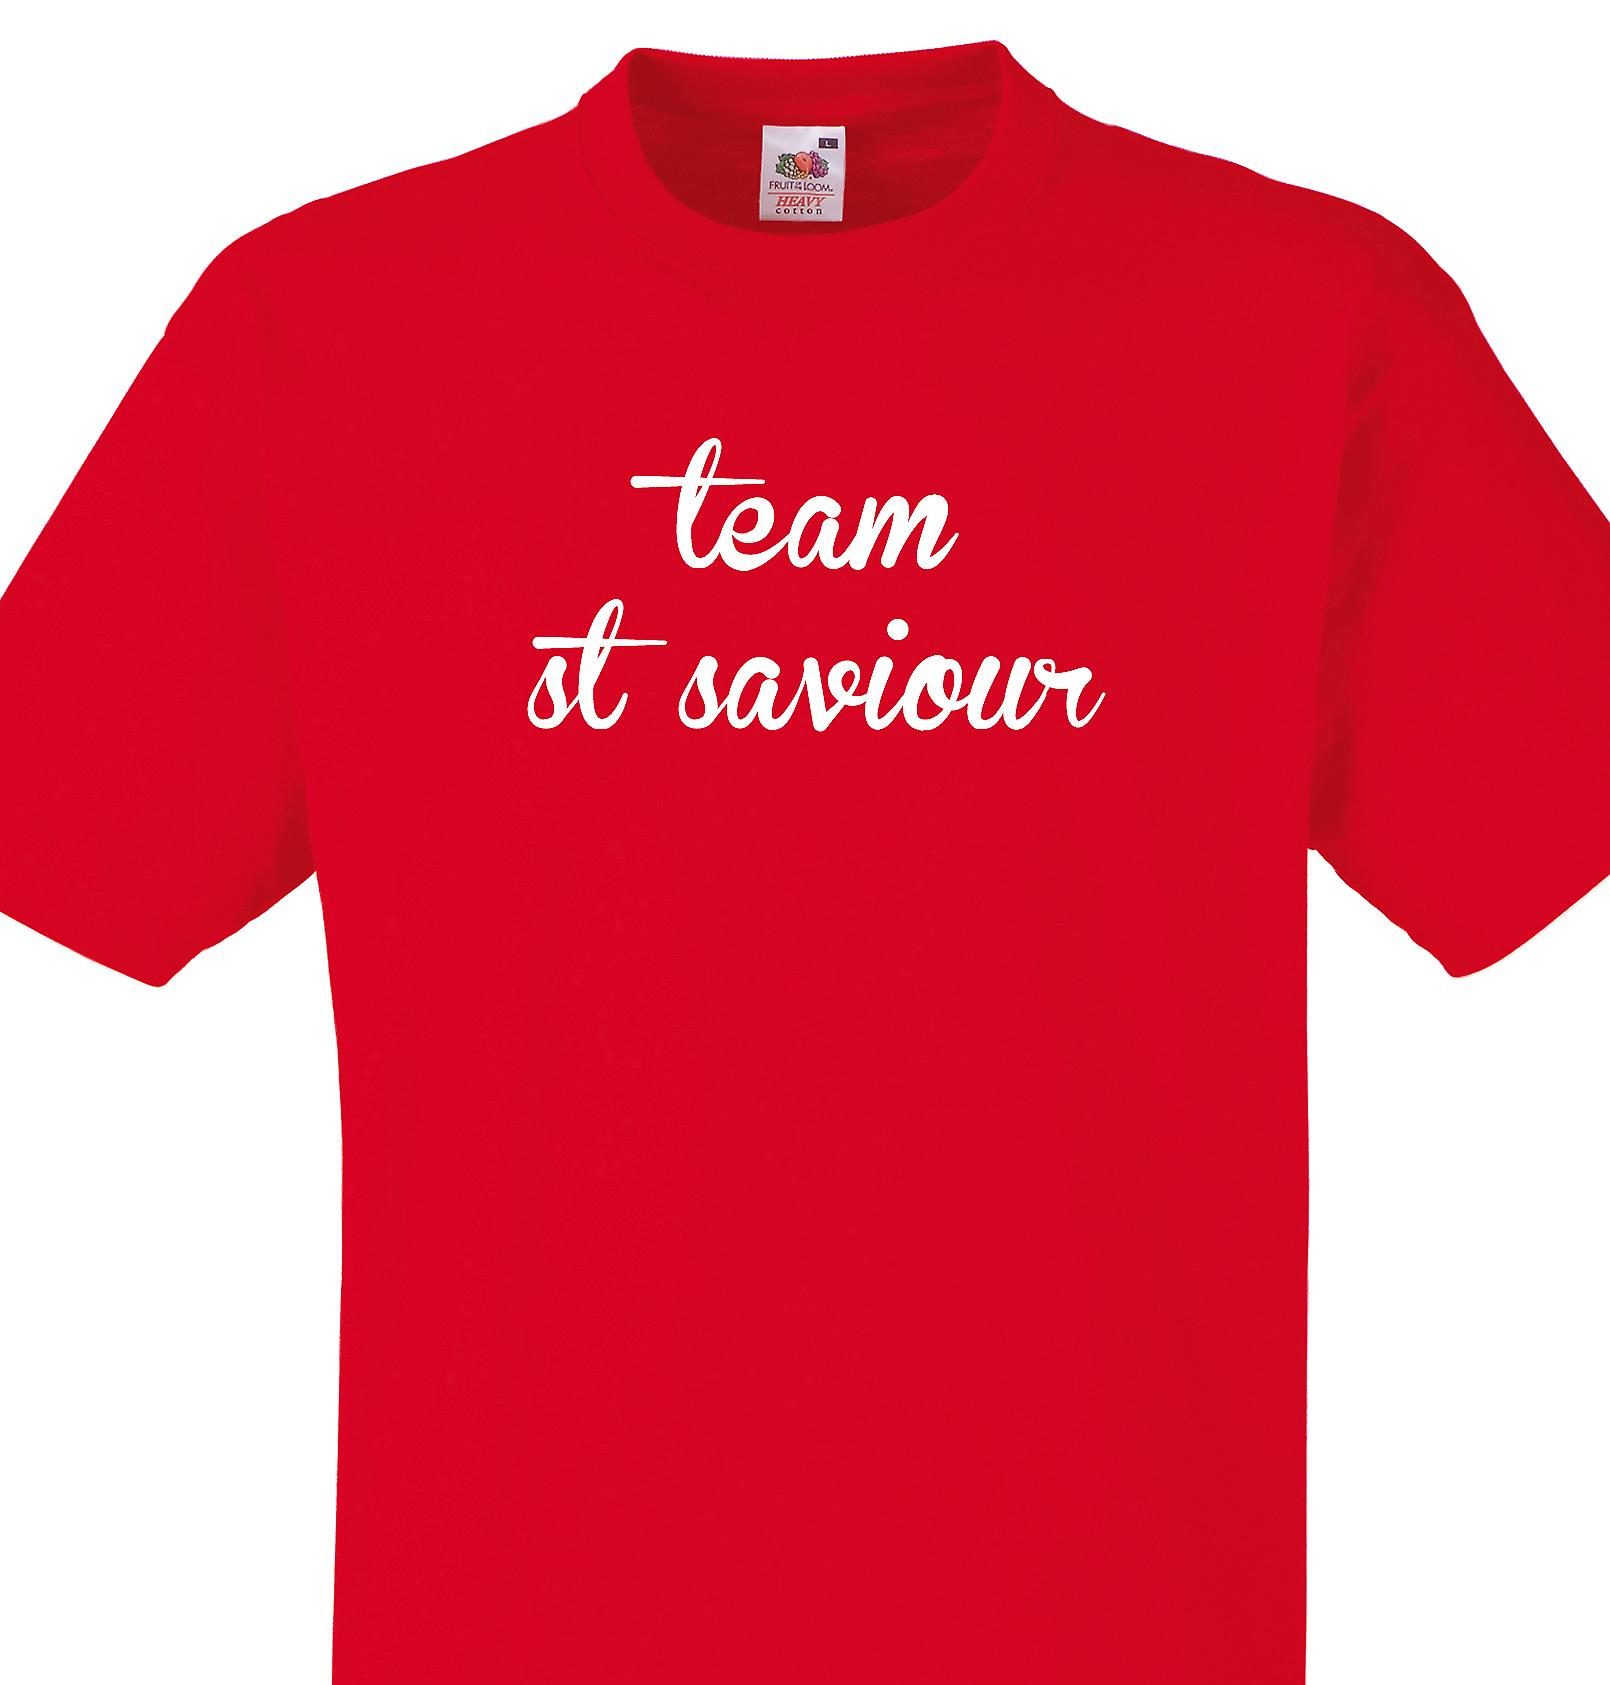 Team St saviour Red T shirt